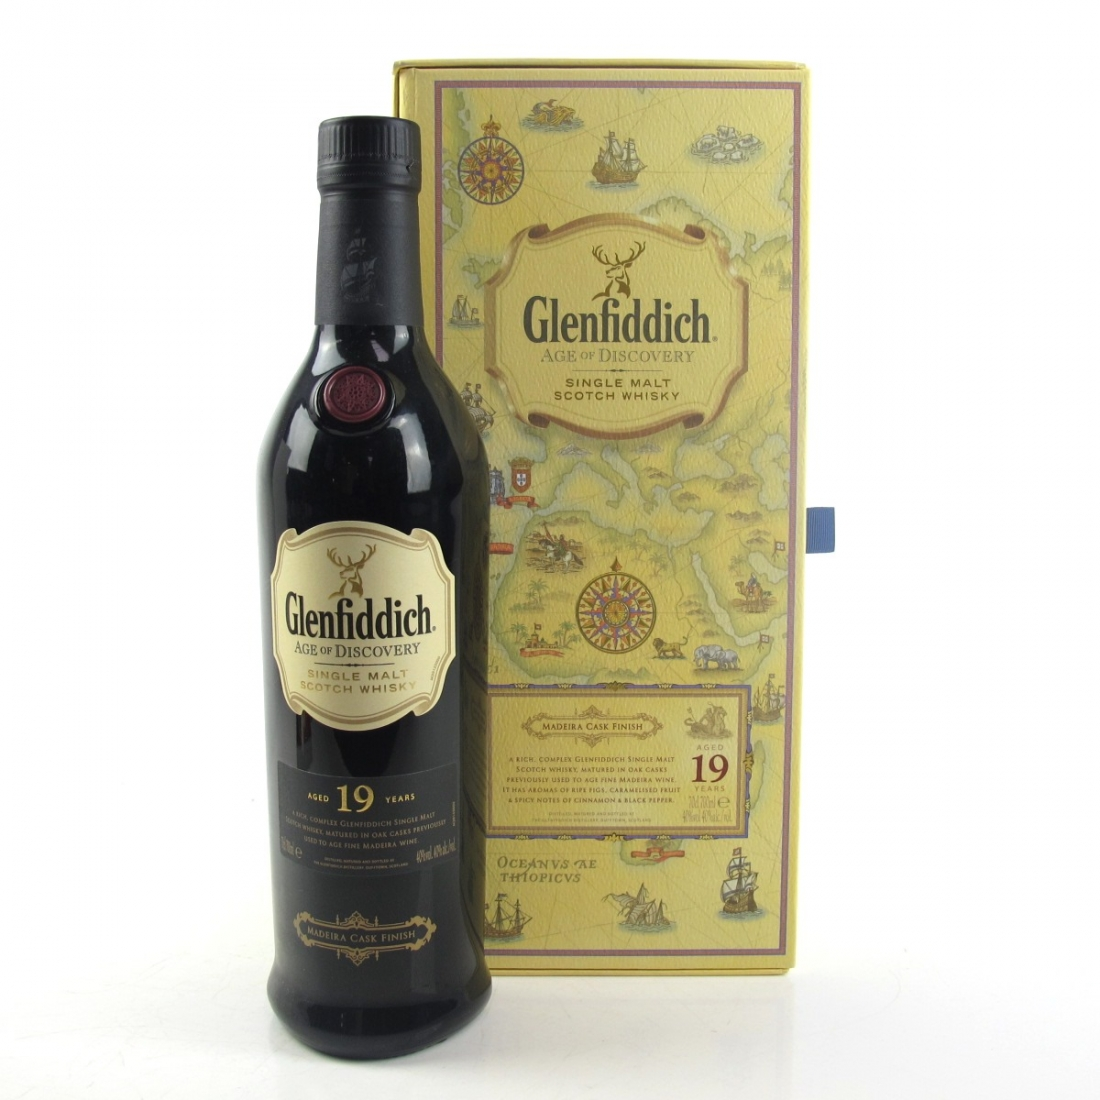 Glenfiddich Age of Discovery 19 Year Old / Madeira Cask